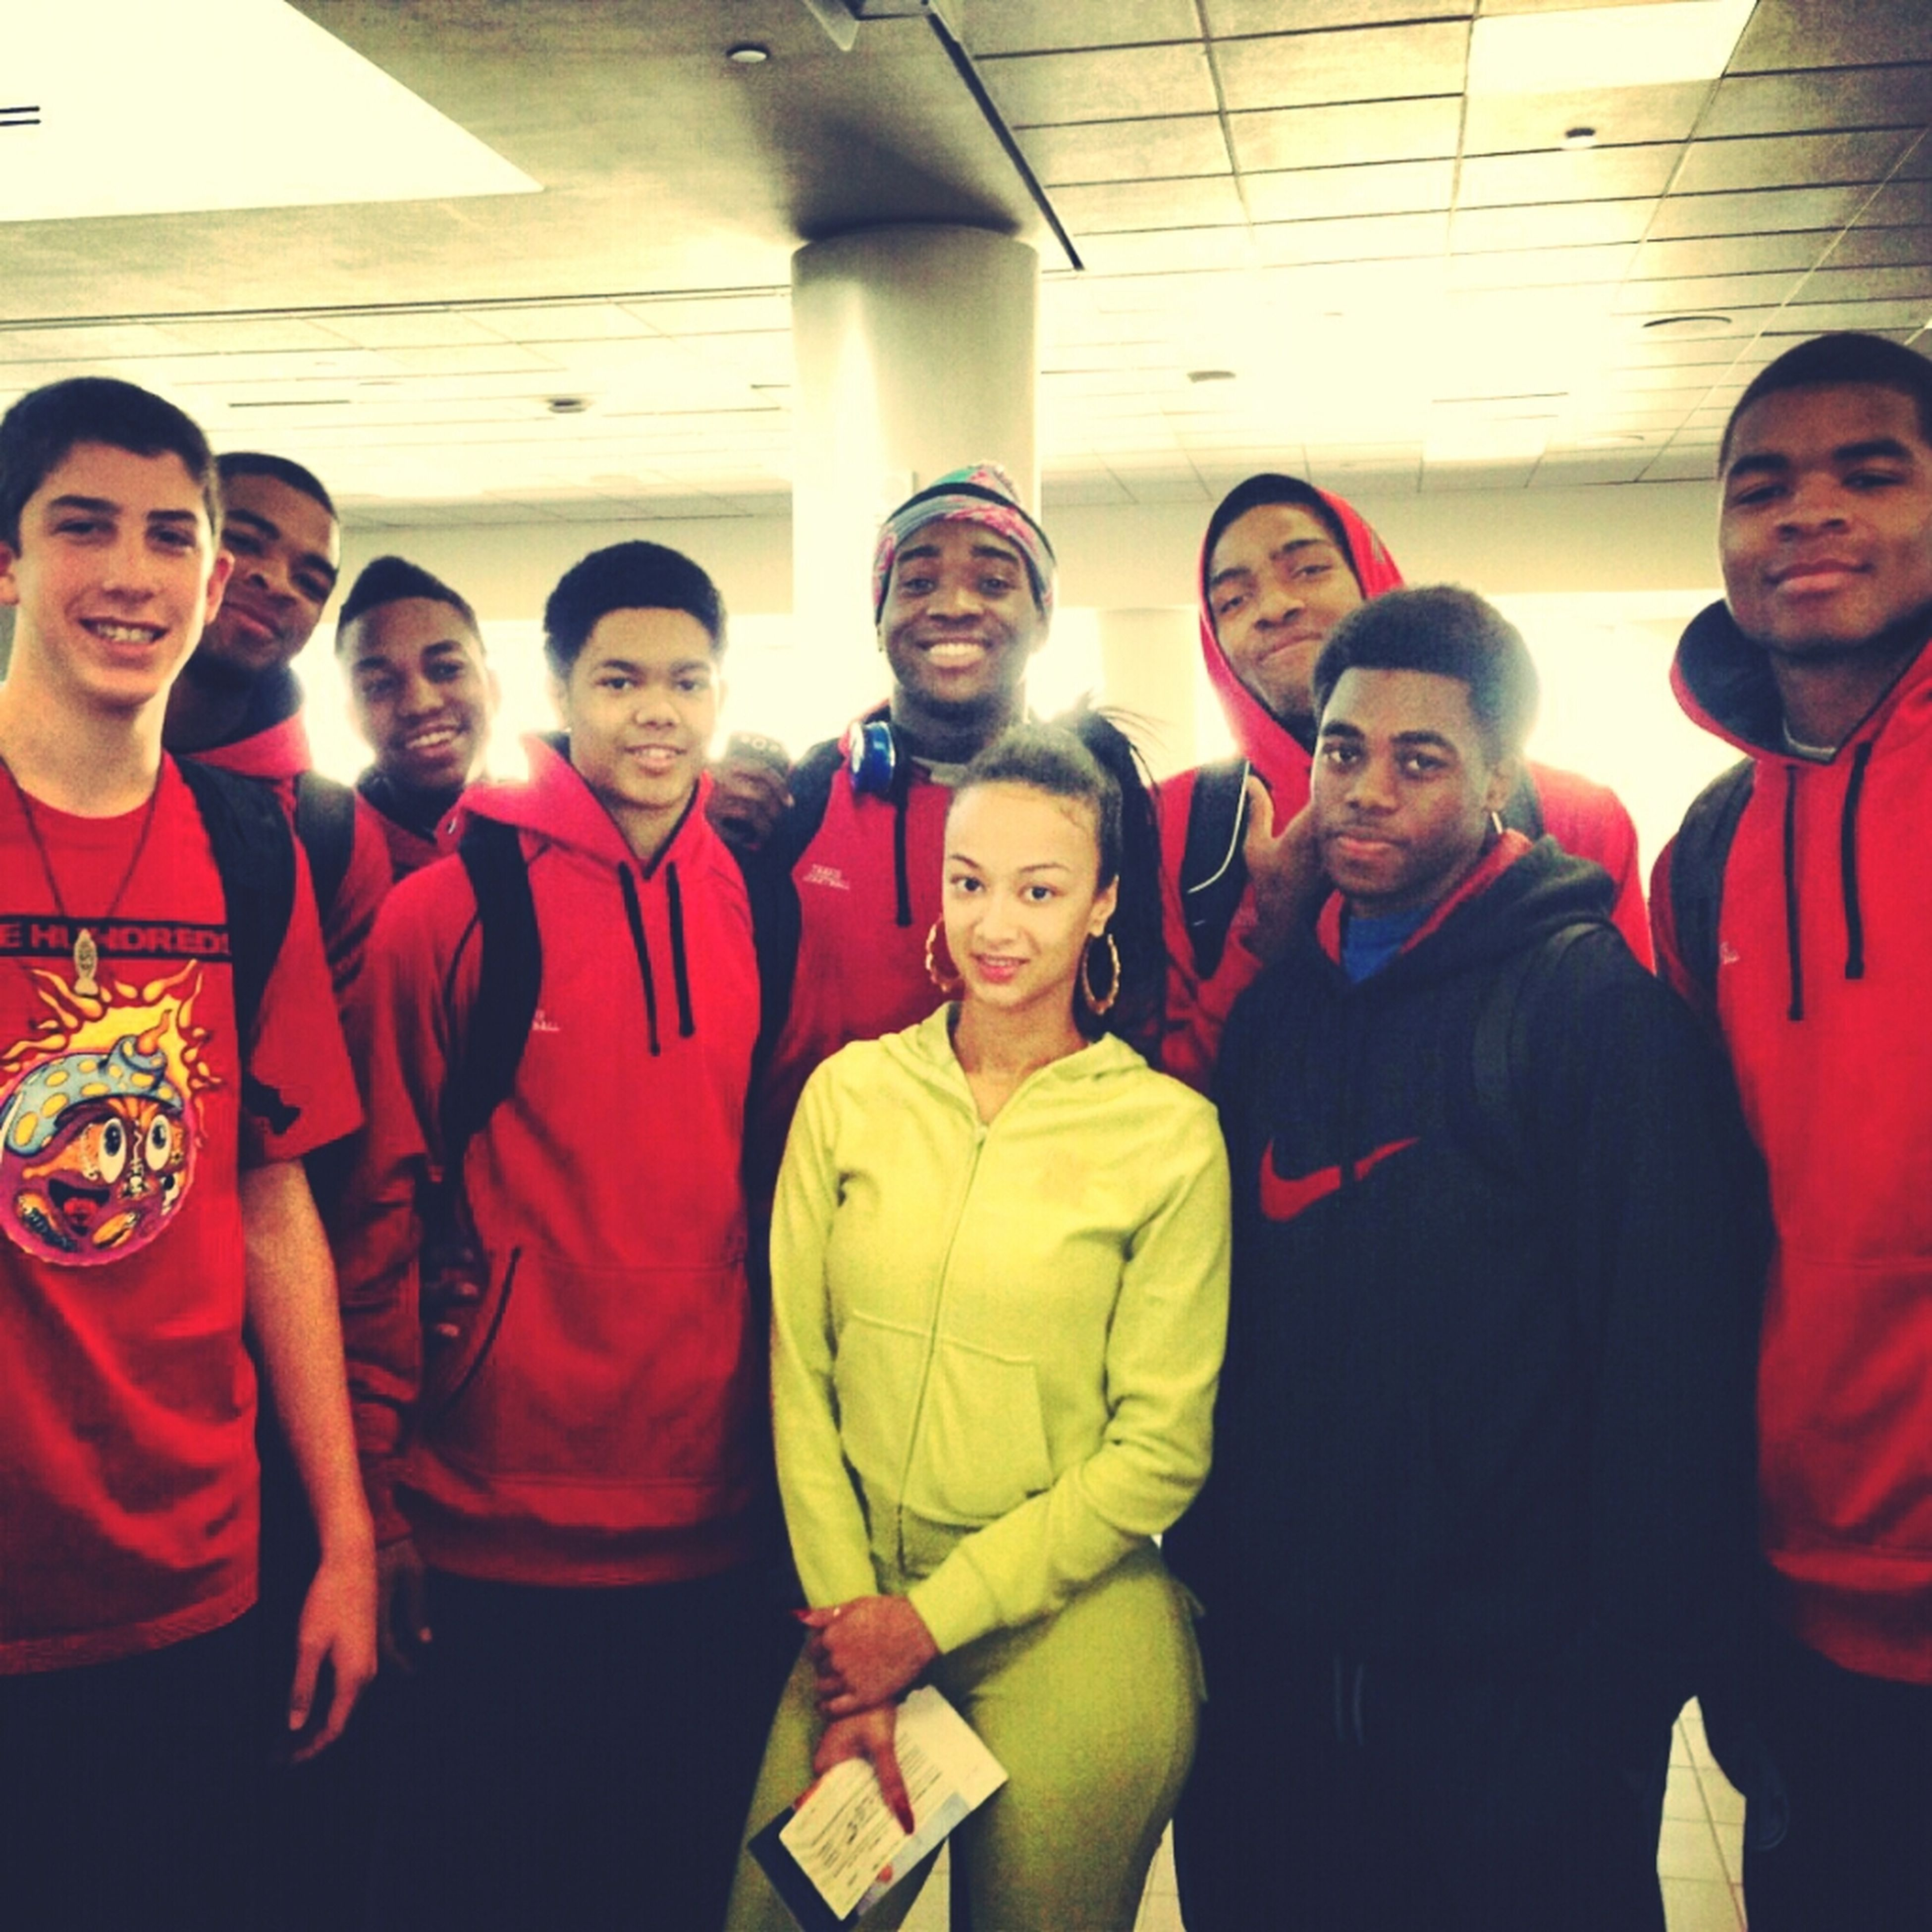 At The Airport With Draya Michele